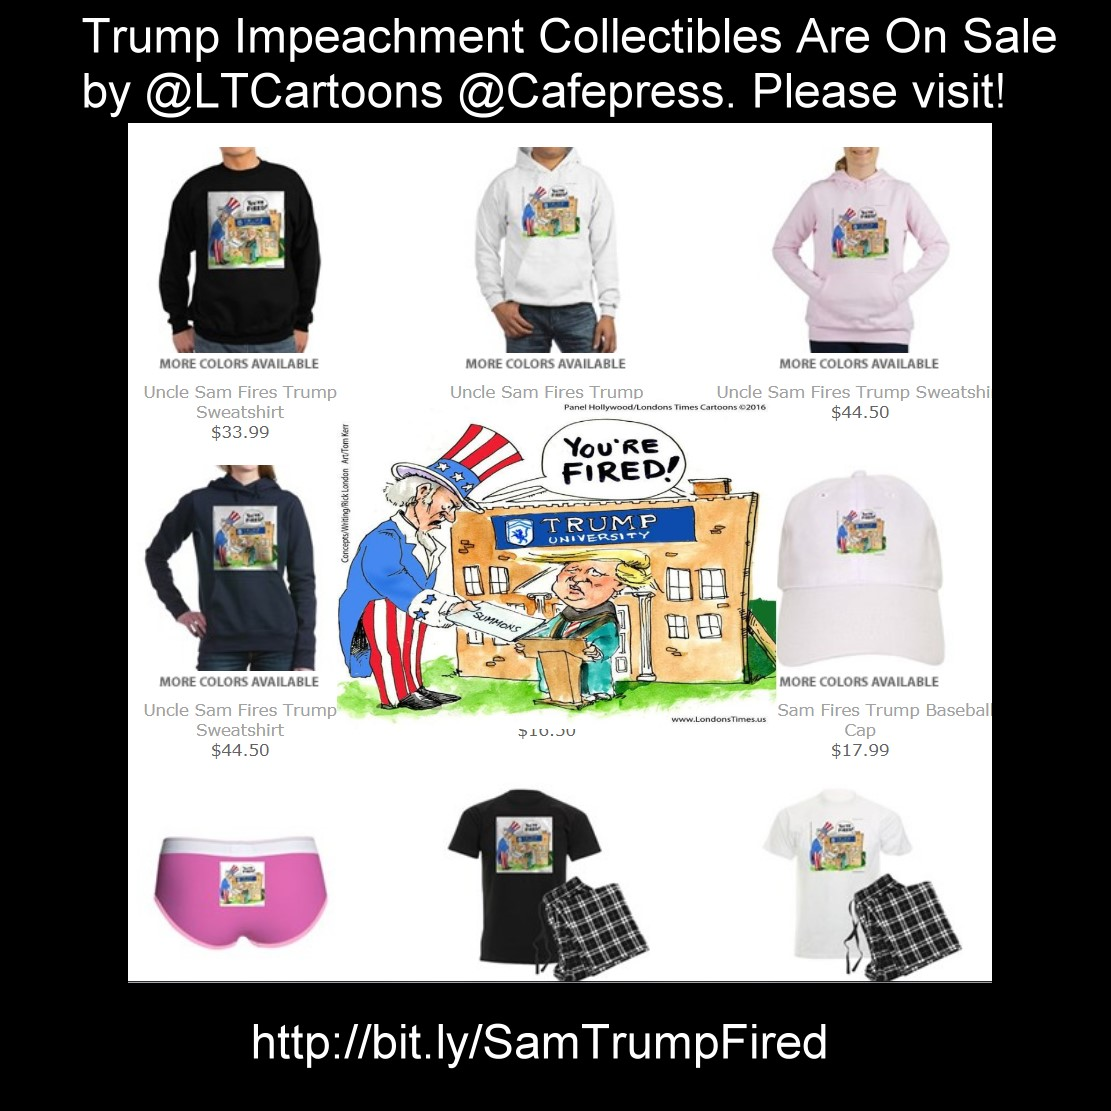 #ImpeachTrump 🎭#tees #cards #mugs etc #exclusive #gifts #humor #funny @LTCartoons @cafepress #gift #deals #discount #parody #cartoons #trump #trumpimpeachment #trumpbribery #theapprentice #unclesam #gifts #politics #impeach No #Code needed Ends Tue